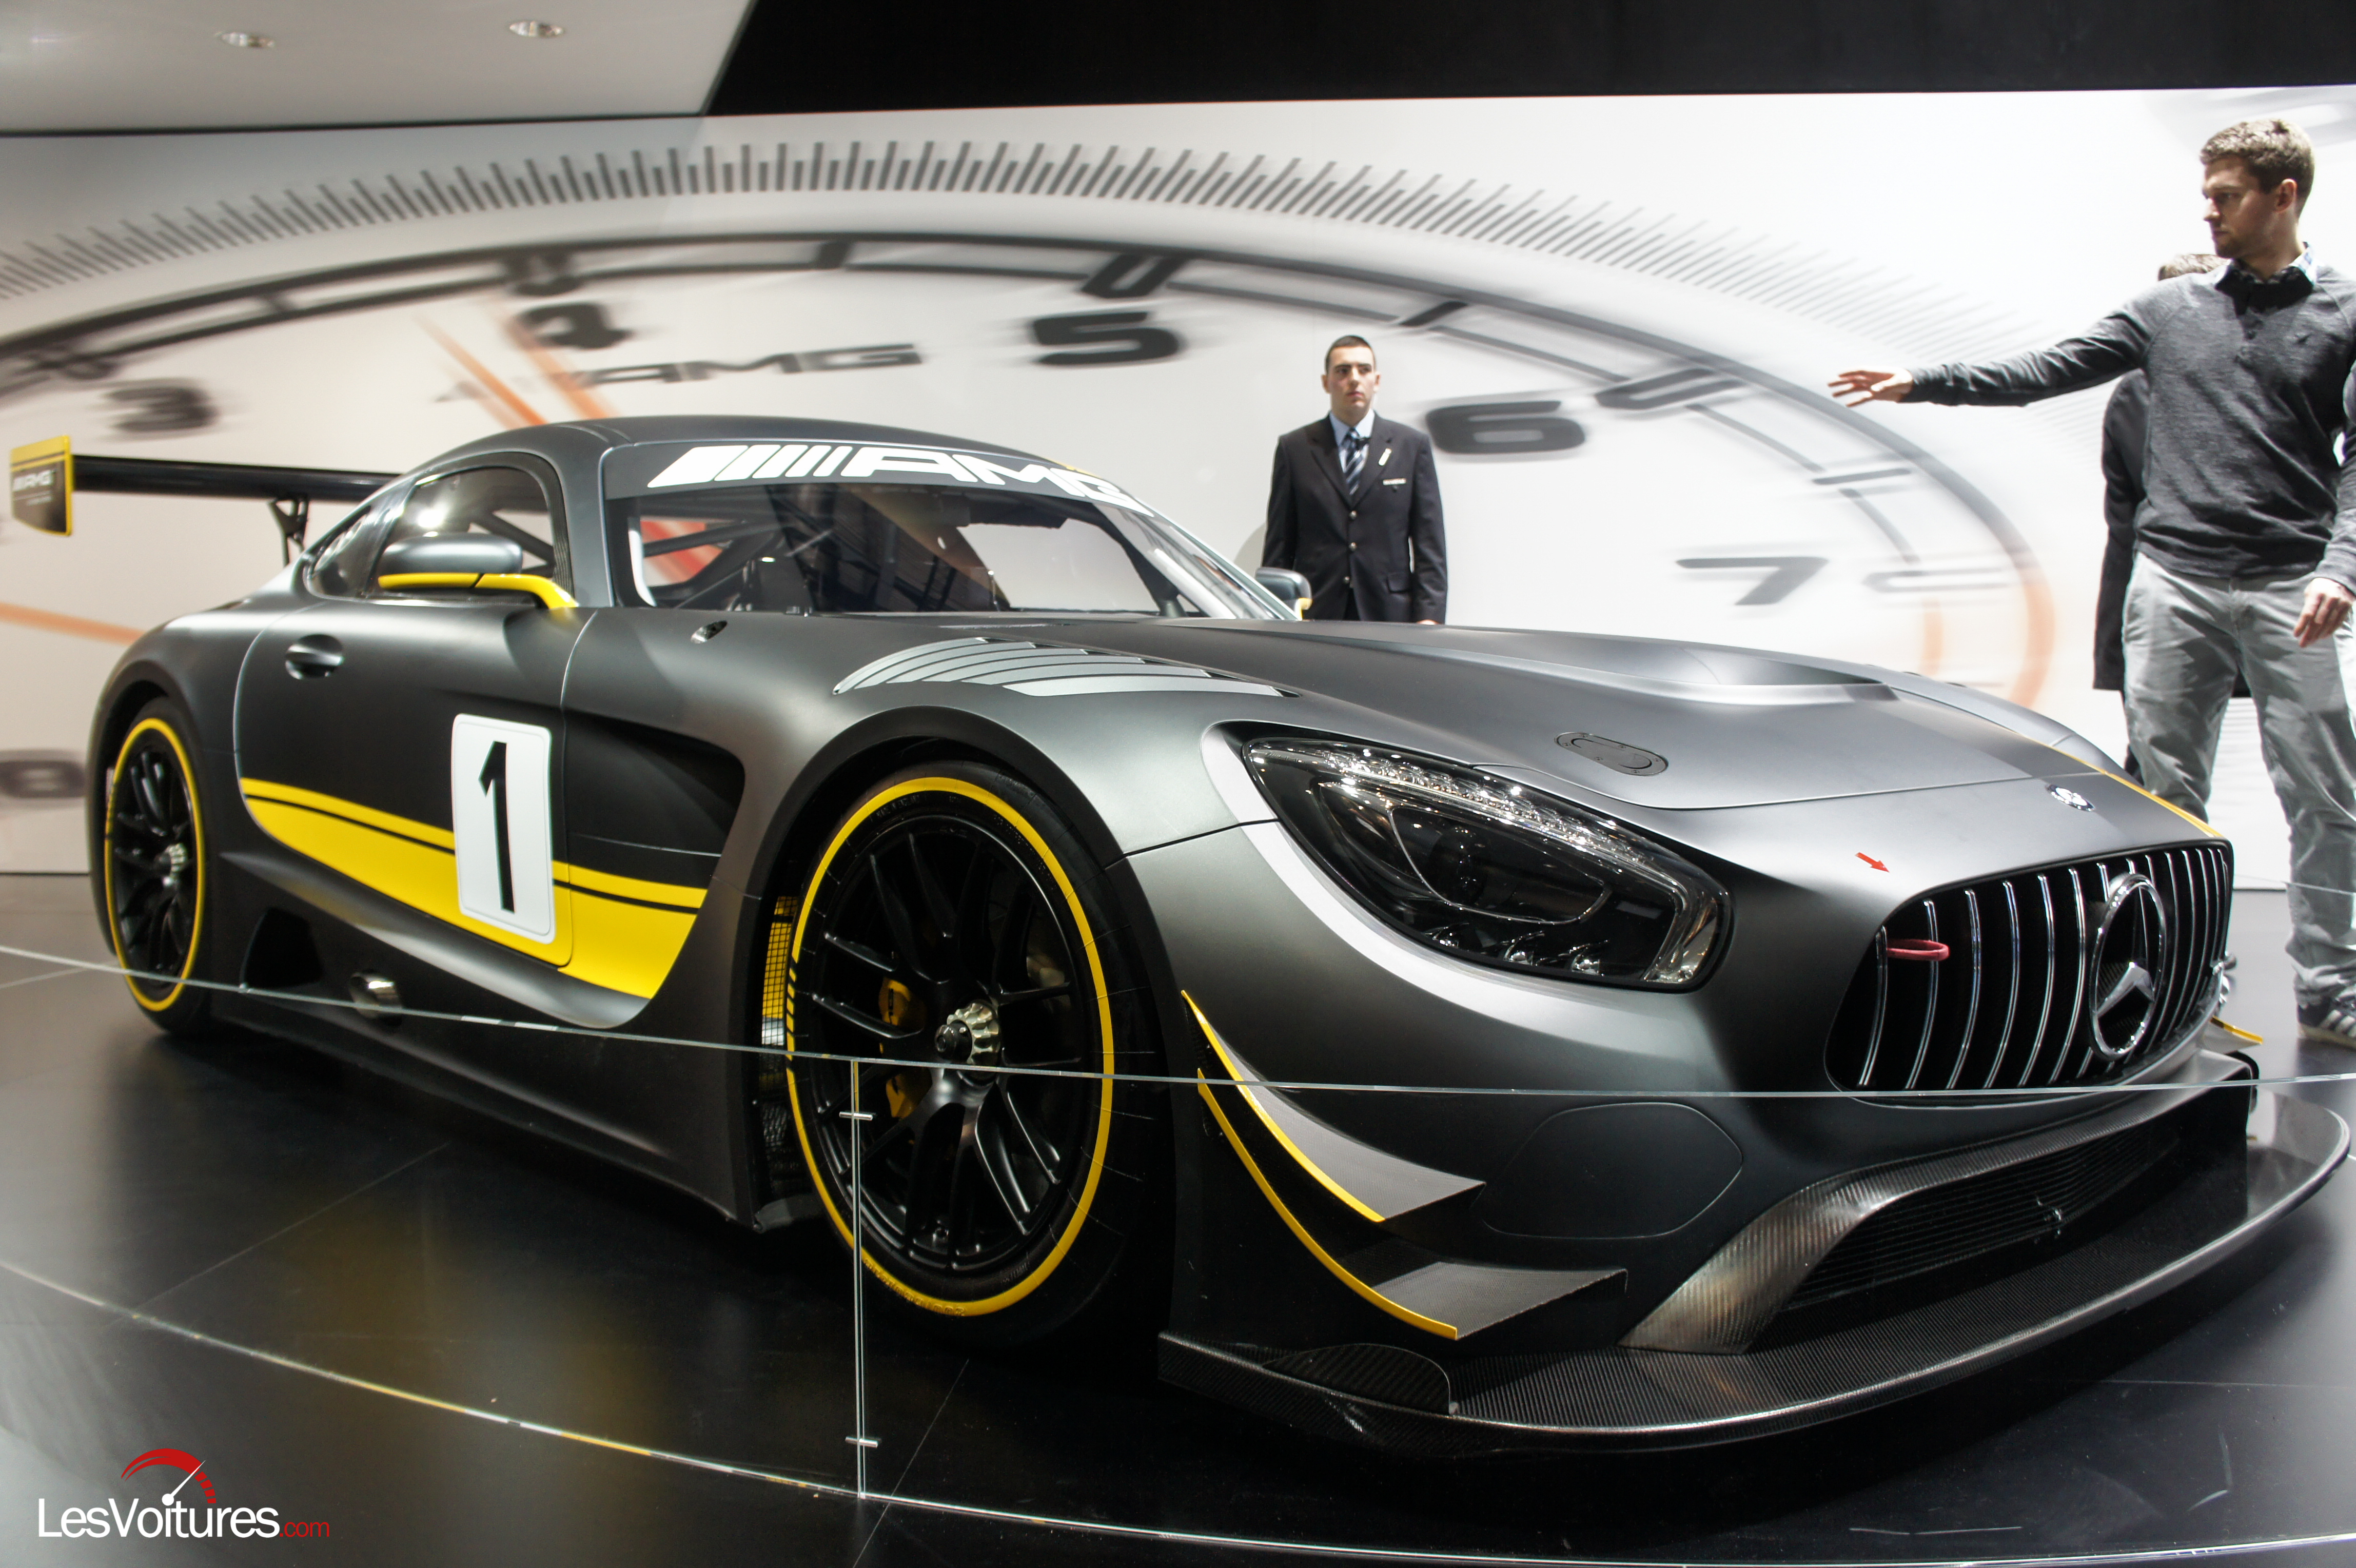 Salon gen ve 2015 94 mercedes amg gt3 les voitures for Geneve 2015 salon